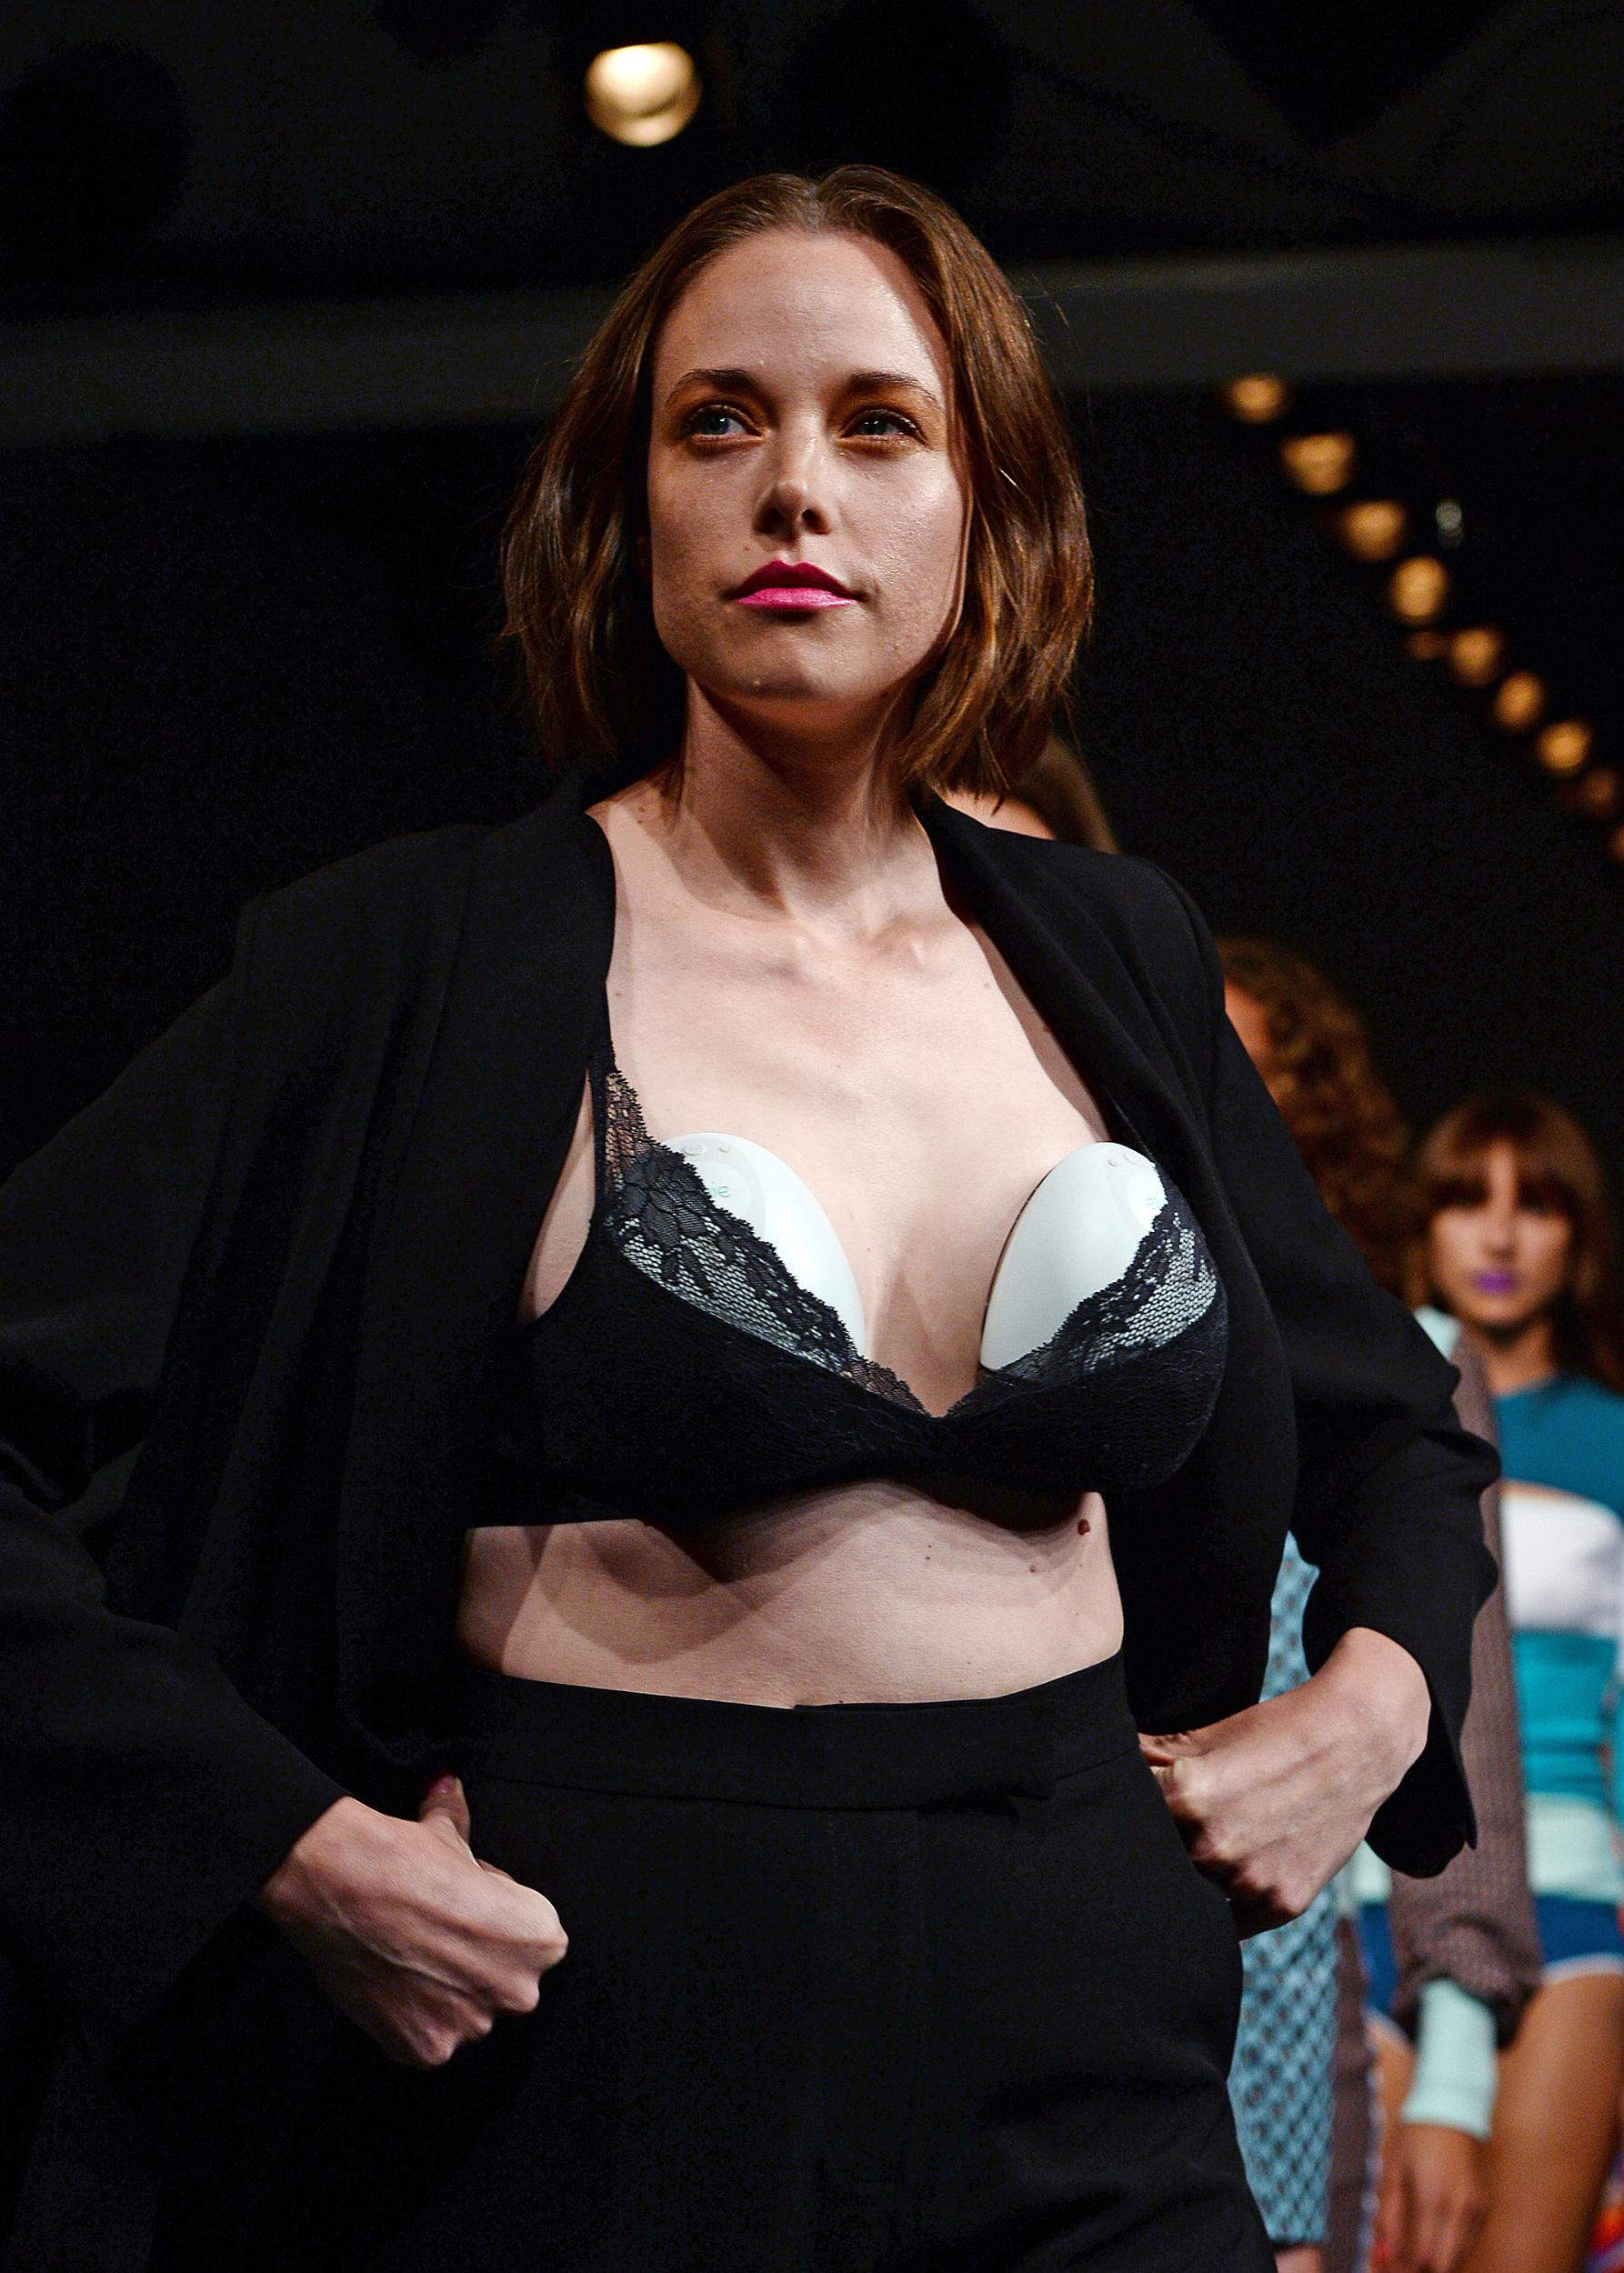 Model and Mom Valeria Garcia Opens Up About Wearing a Breast Pump on the Runway recommendations